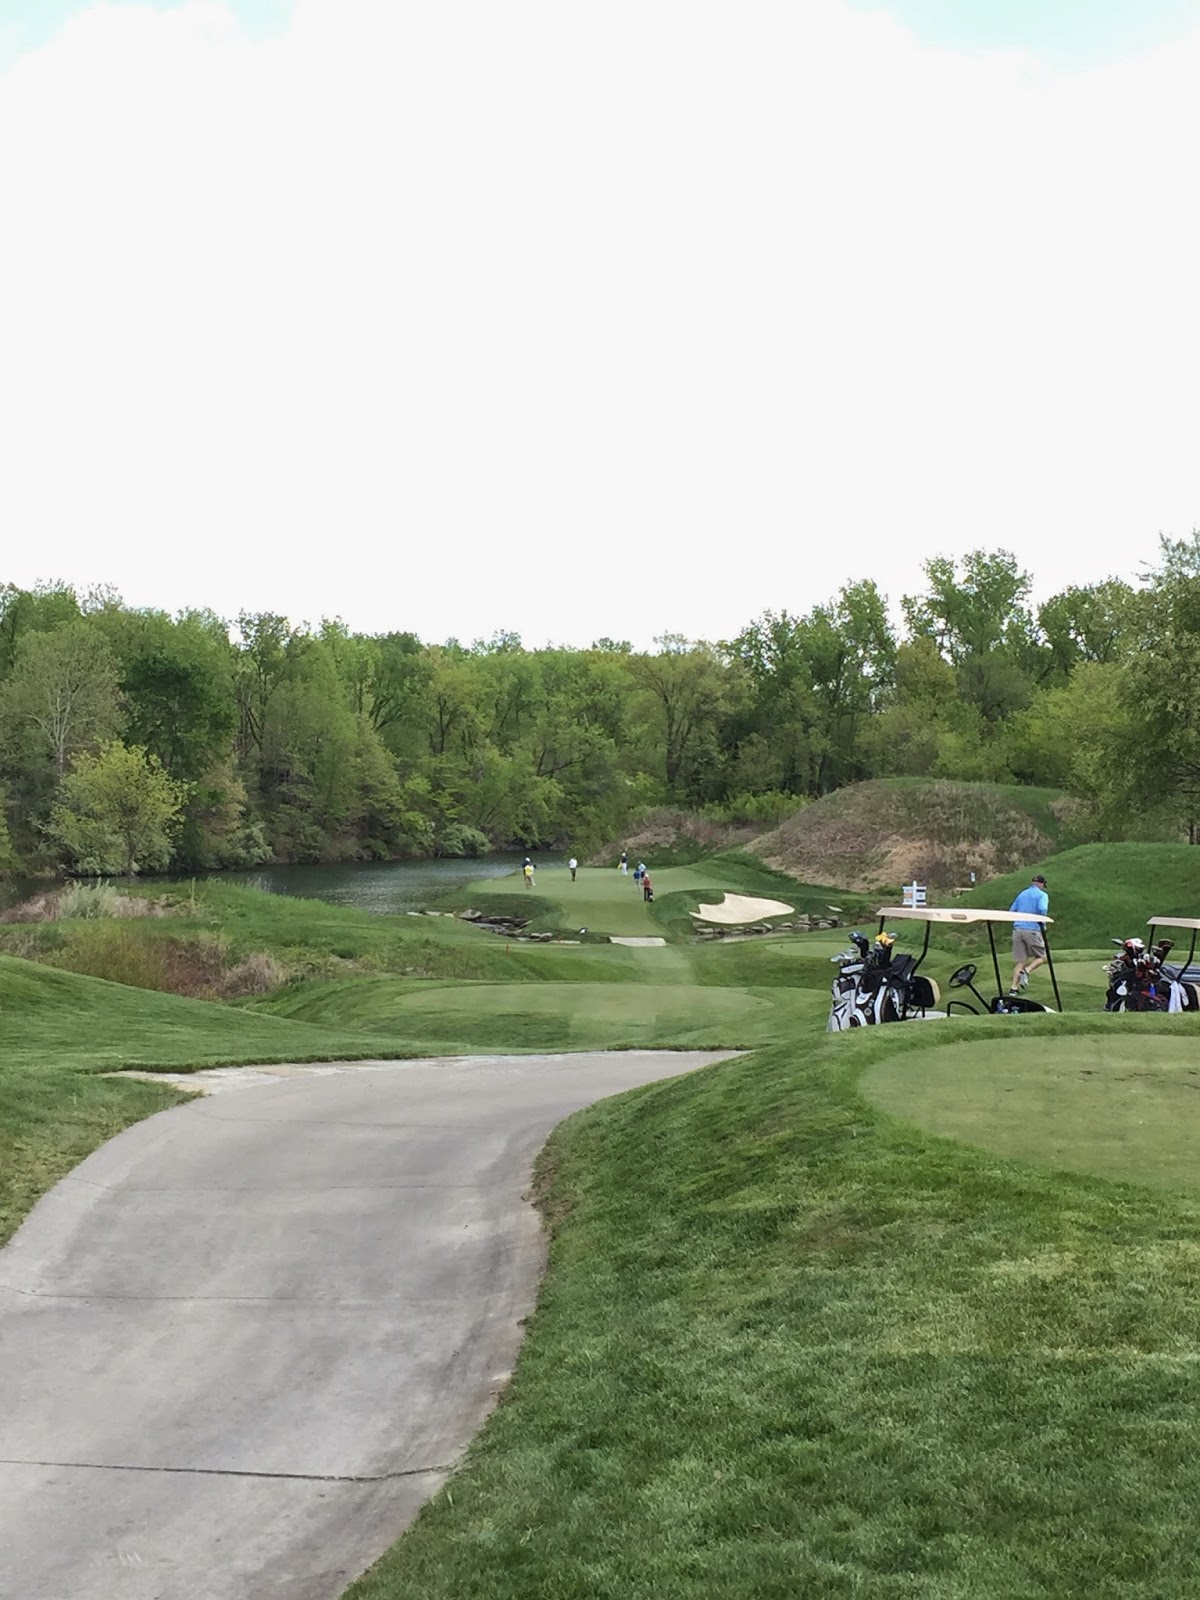 The 16th hole at Victoria National.